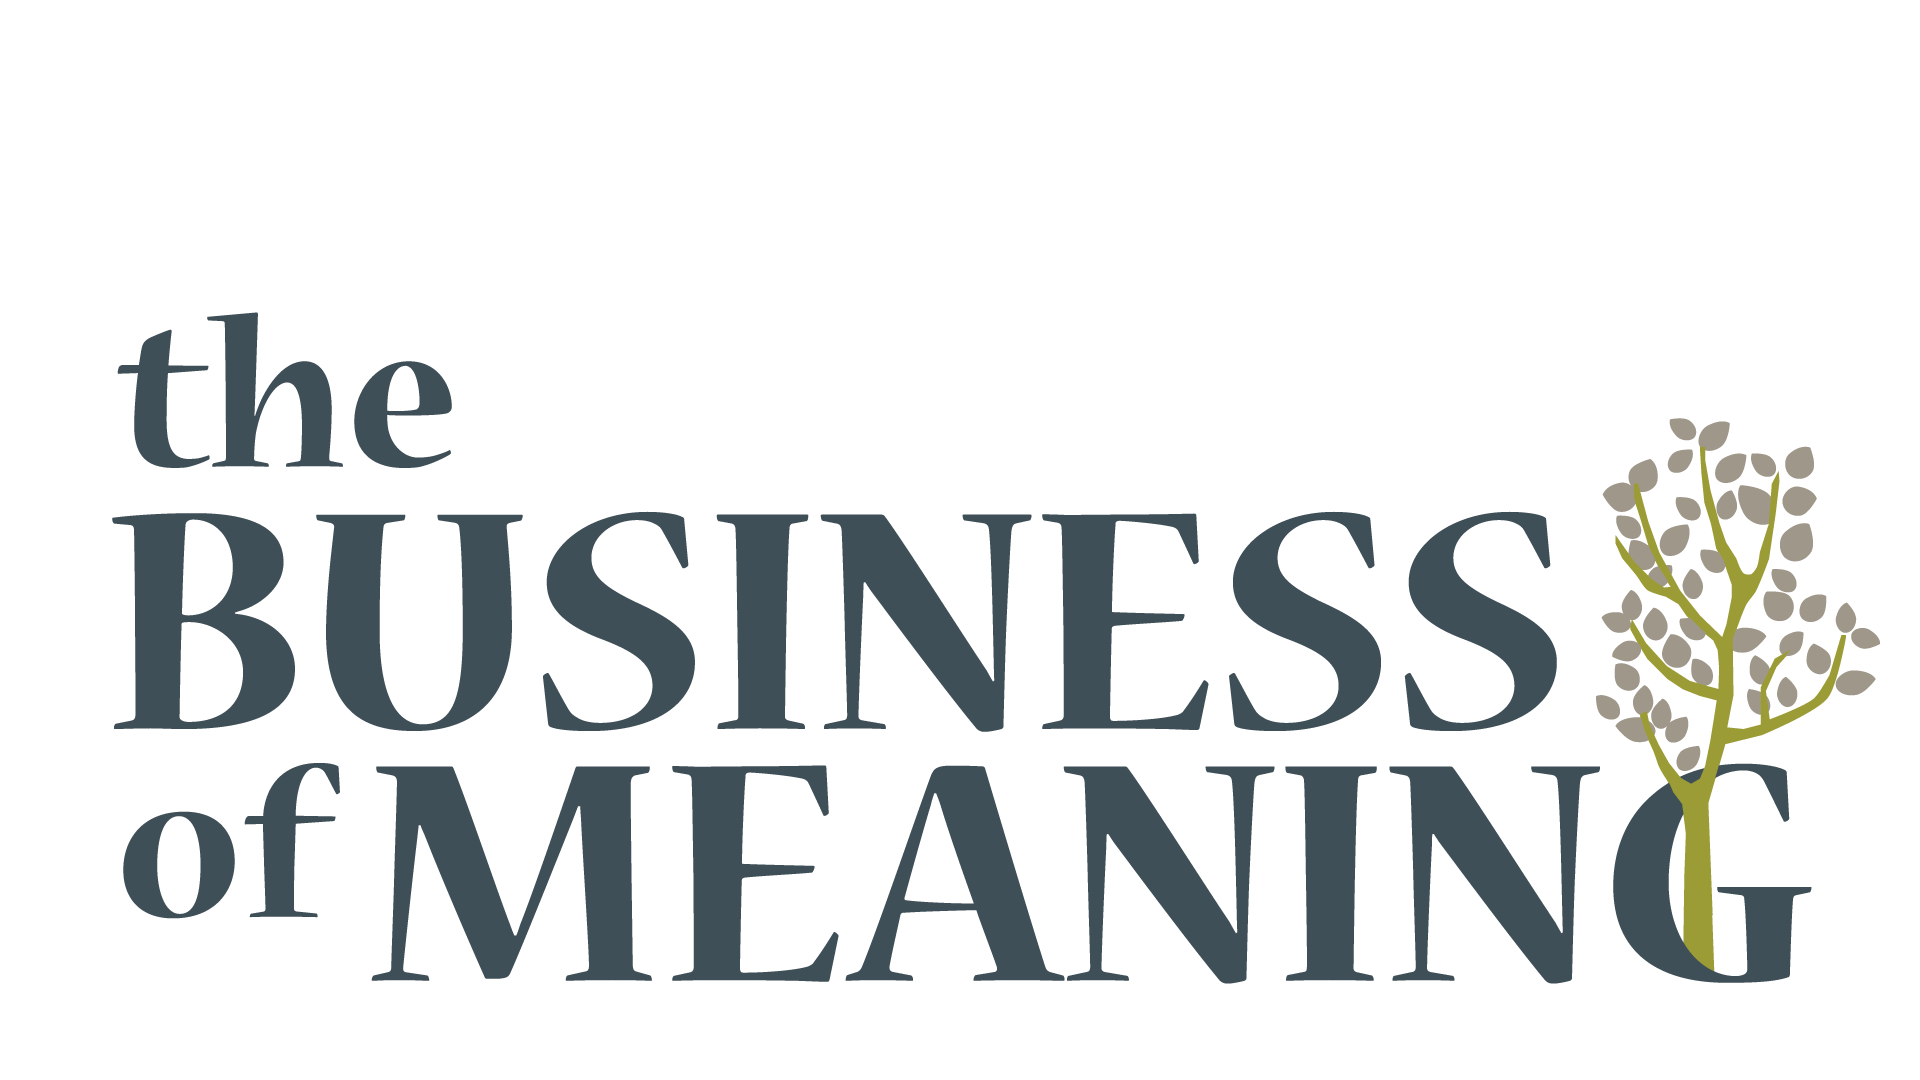 The Business of Meaning